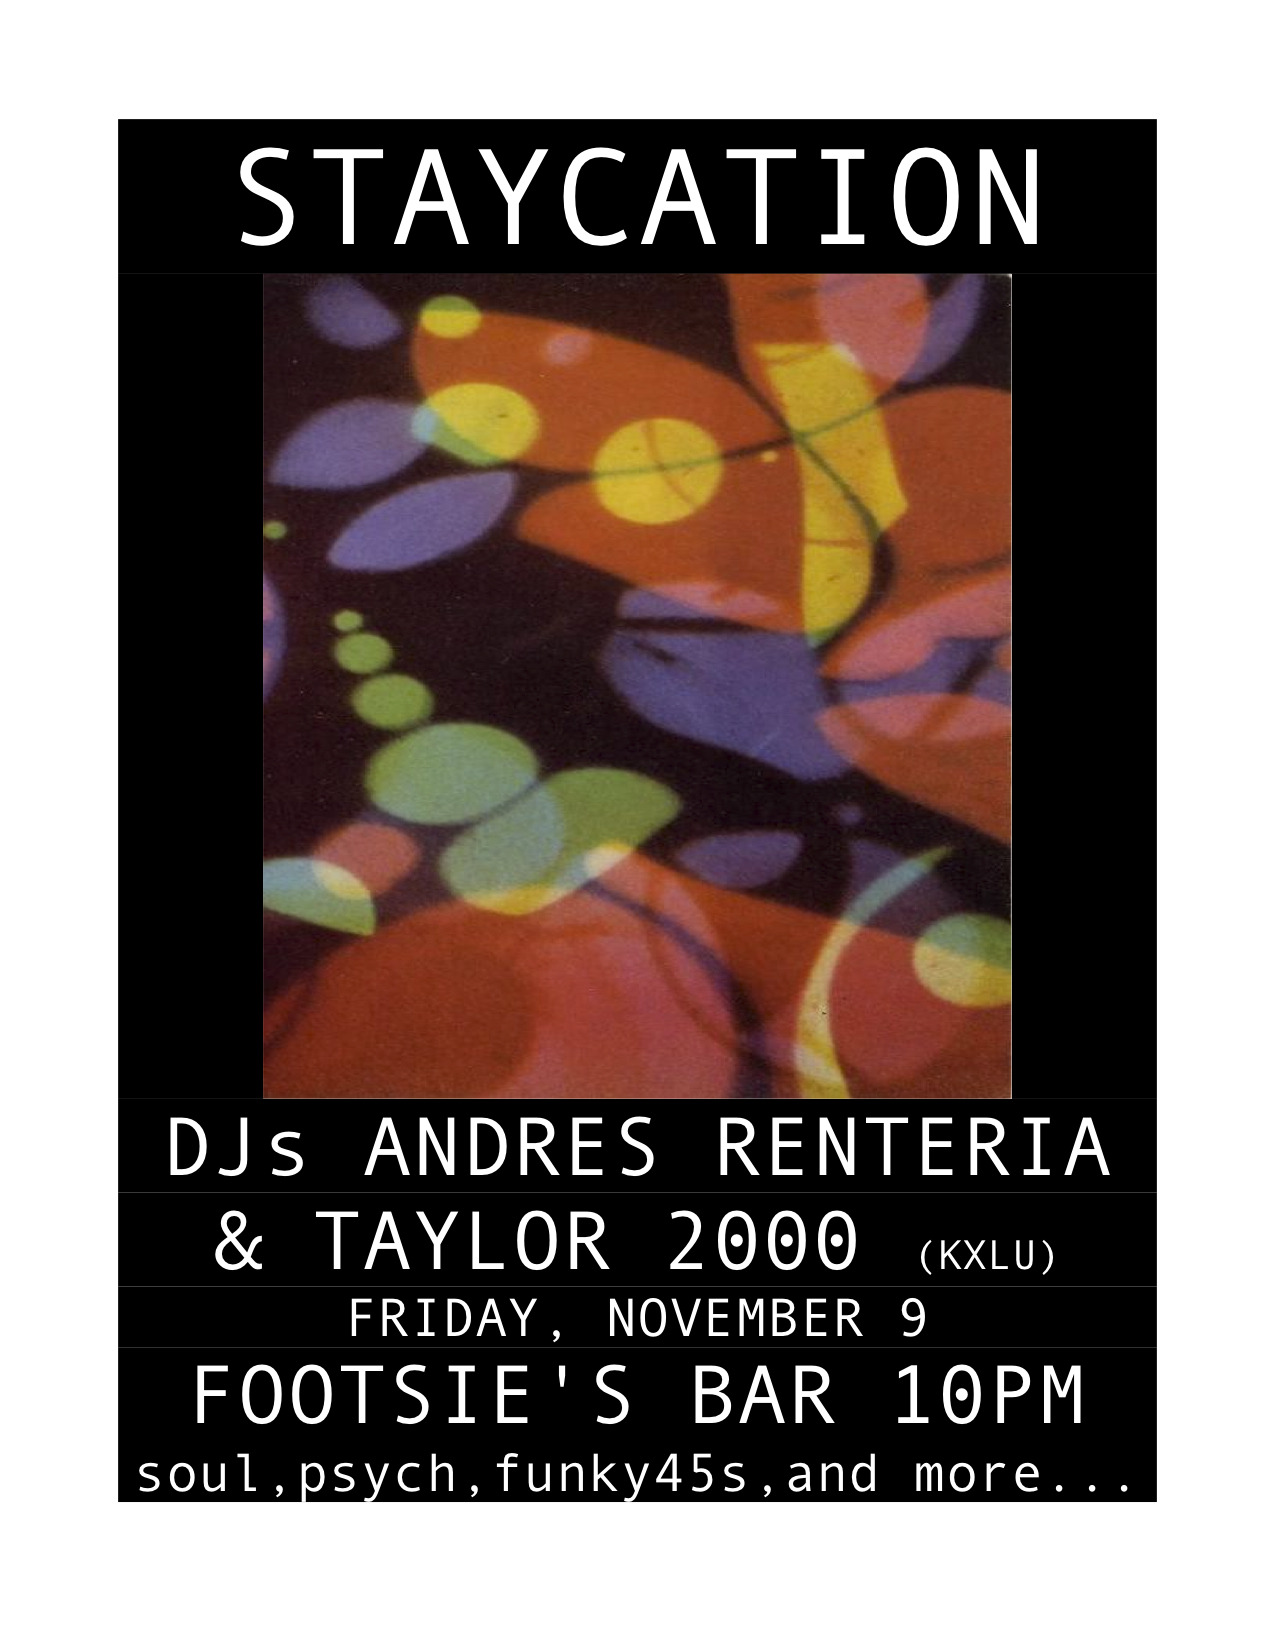 Just about every Friday I am at Footsie's Bar for STAYCATION to play records for wonderful people. This week has been incredible so let's celebrate together. Joining me will be Taylor 2000 (Taylor C. Rowley) from KXLU who has an incredible radio show called The Windmills of Your Mind that airs every Sunday from 11pm-2am. Fridays are my favorite day of the week!!!! FREE from 10pm-2am………